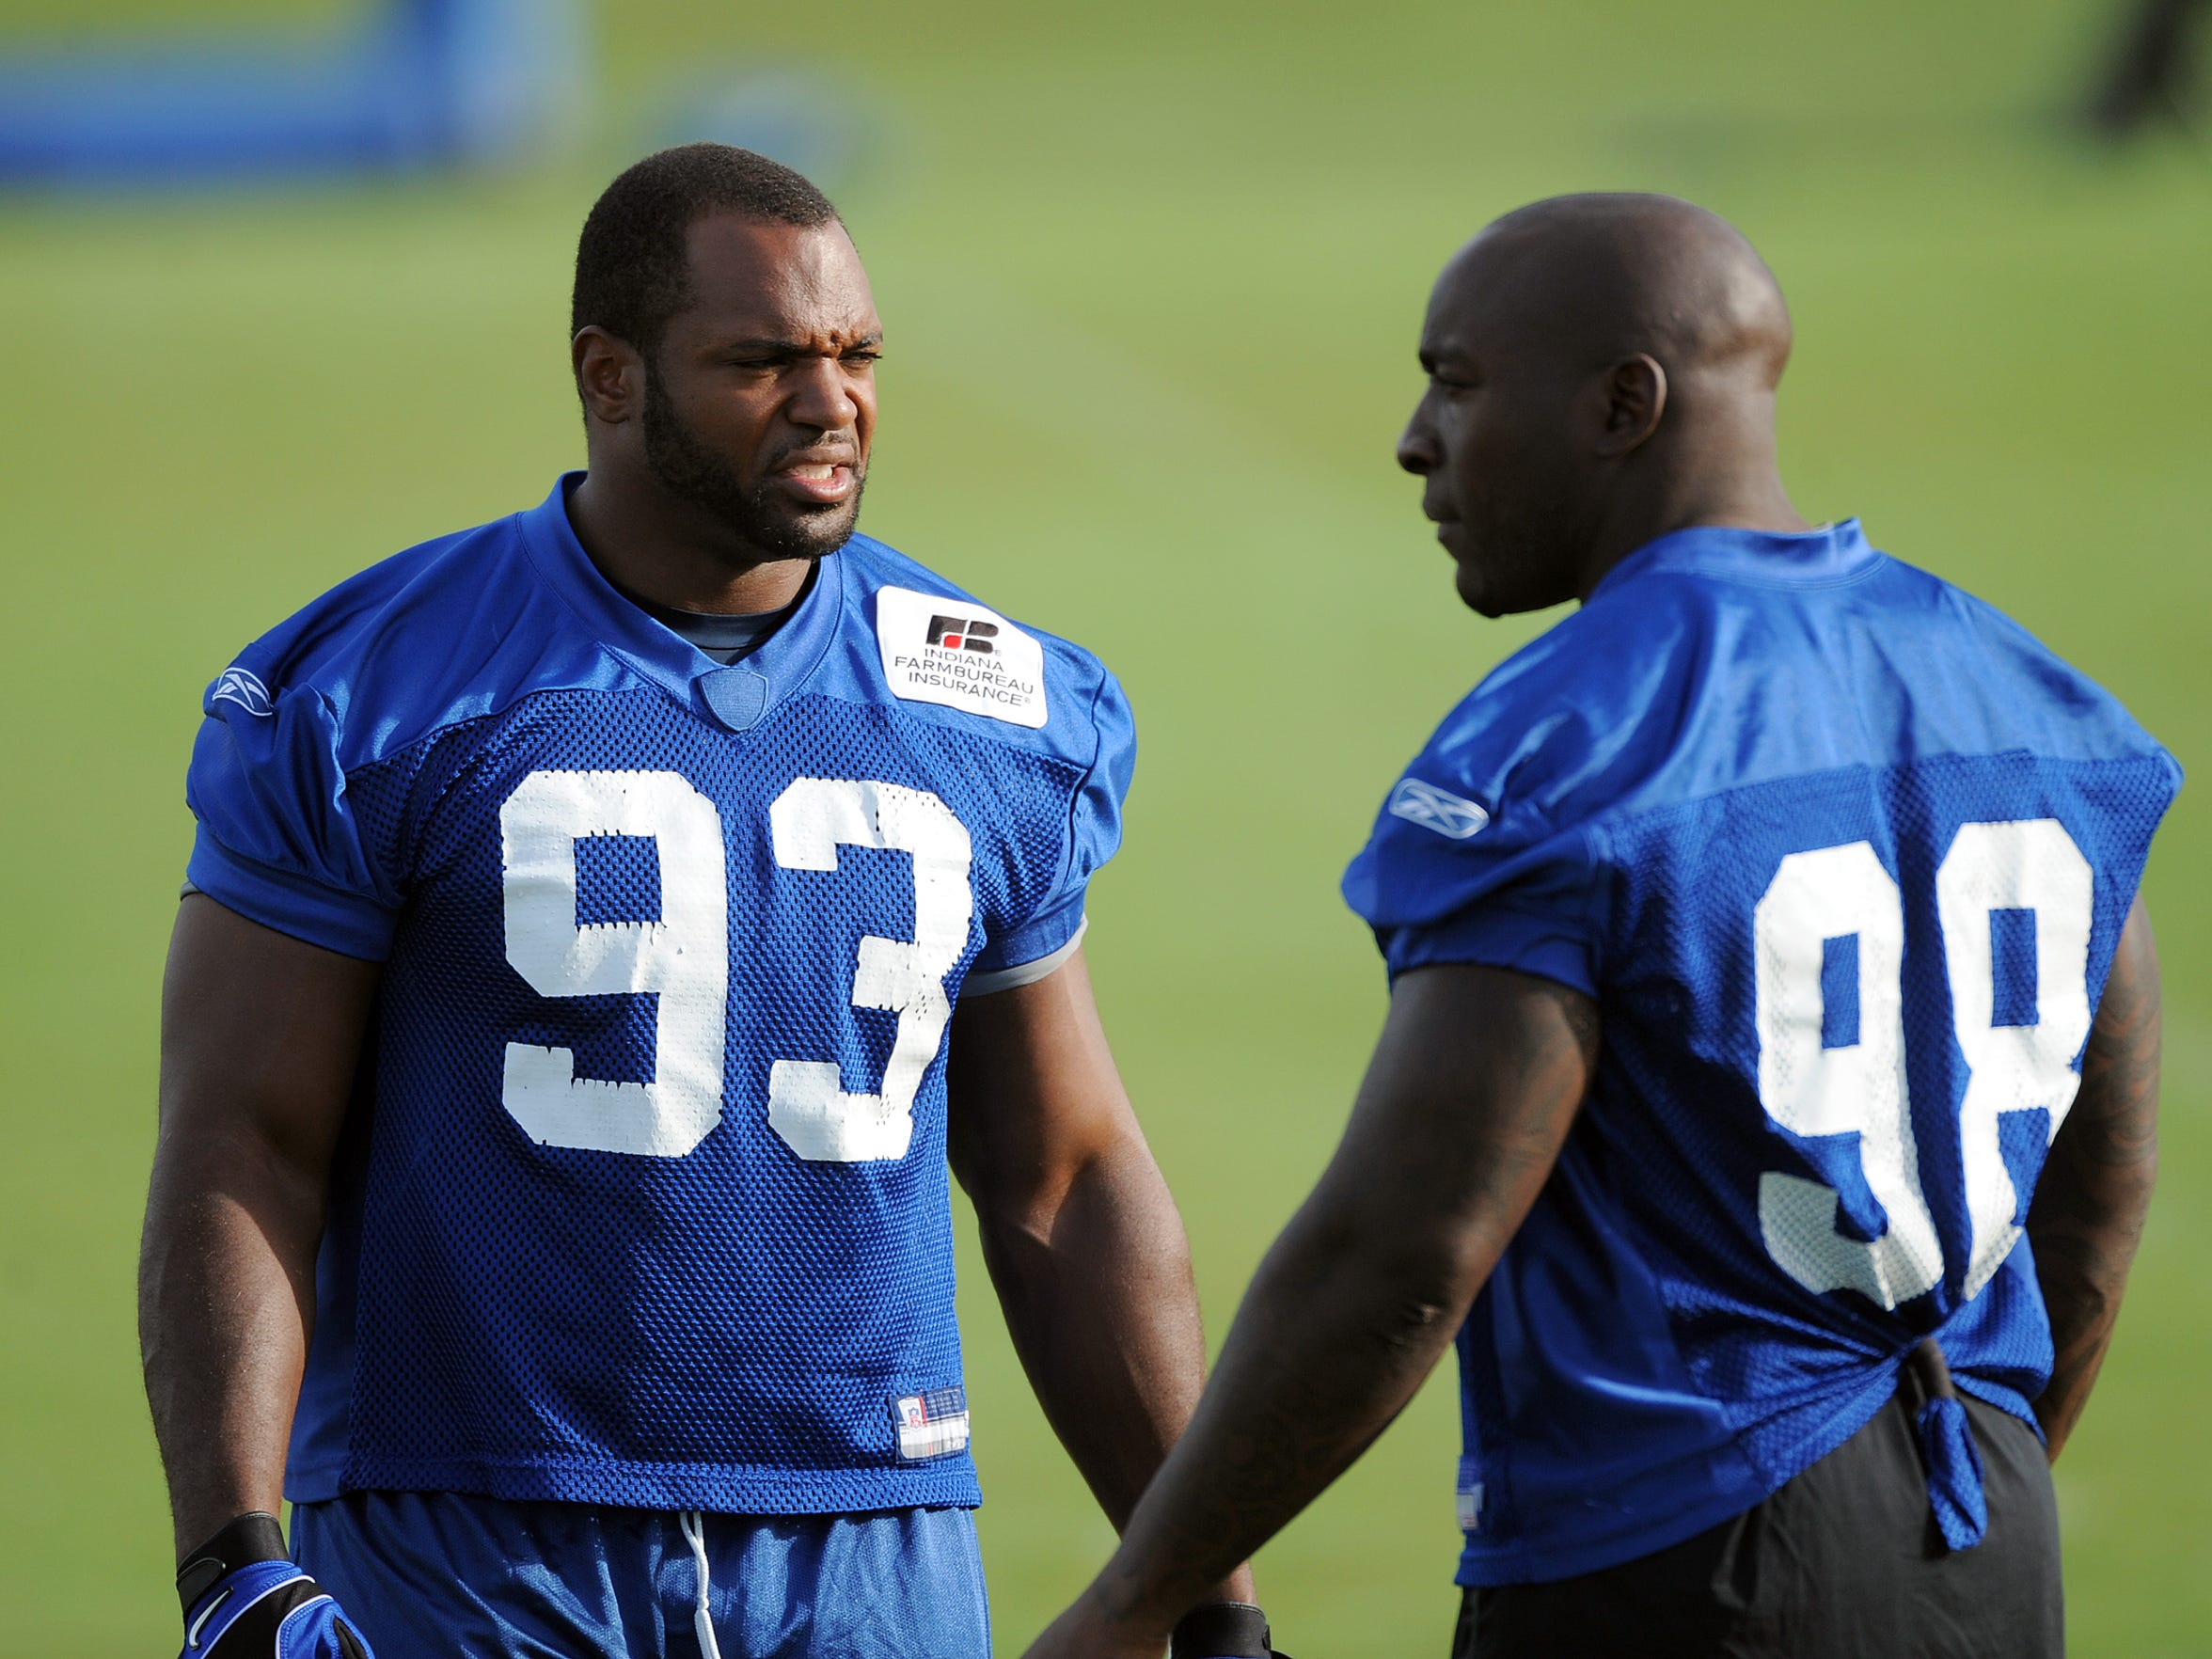 Not bad for a tandem: Freeney (left) and Mathis combined for 186 sacks and 73 forced fumbles over 10 seasons together.